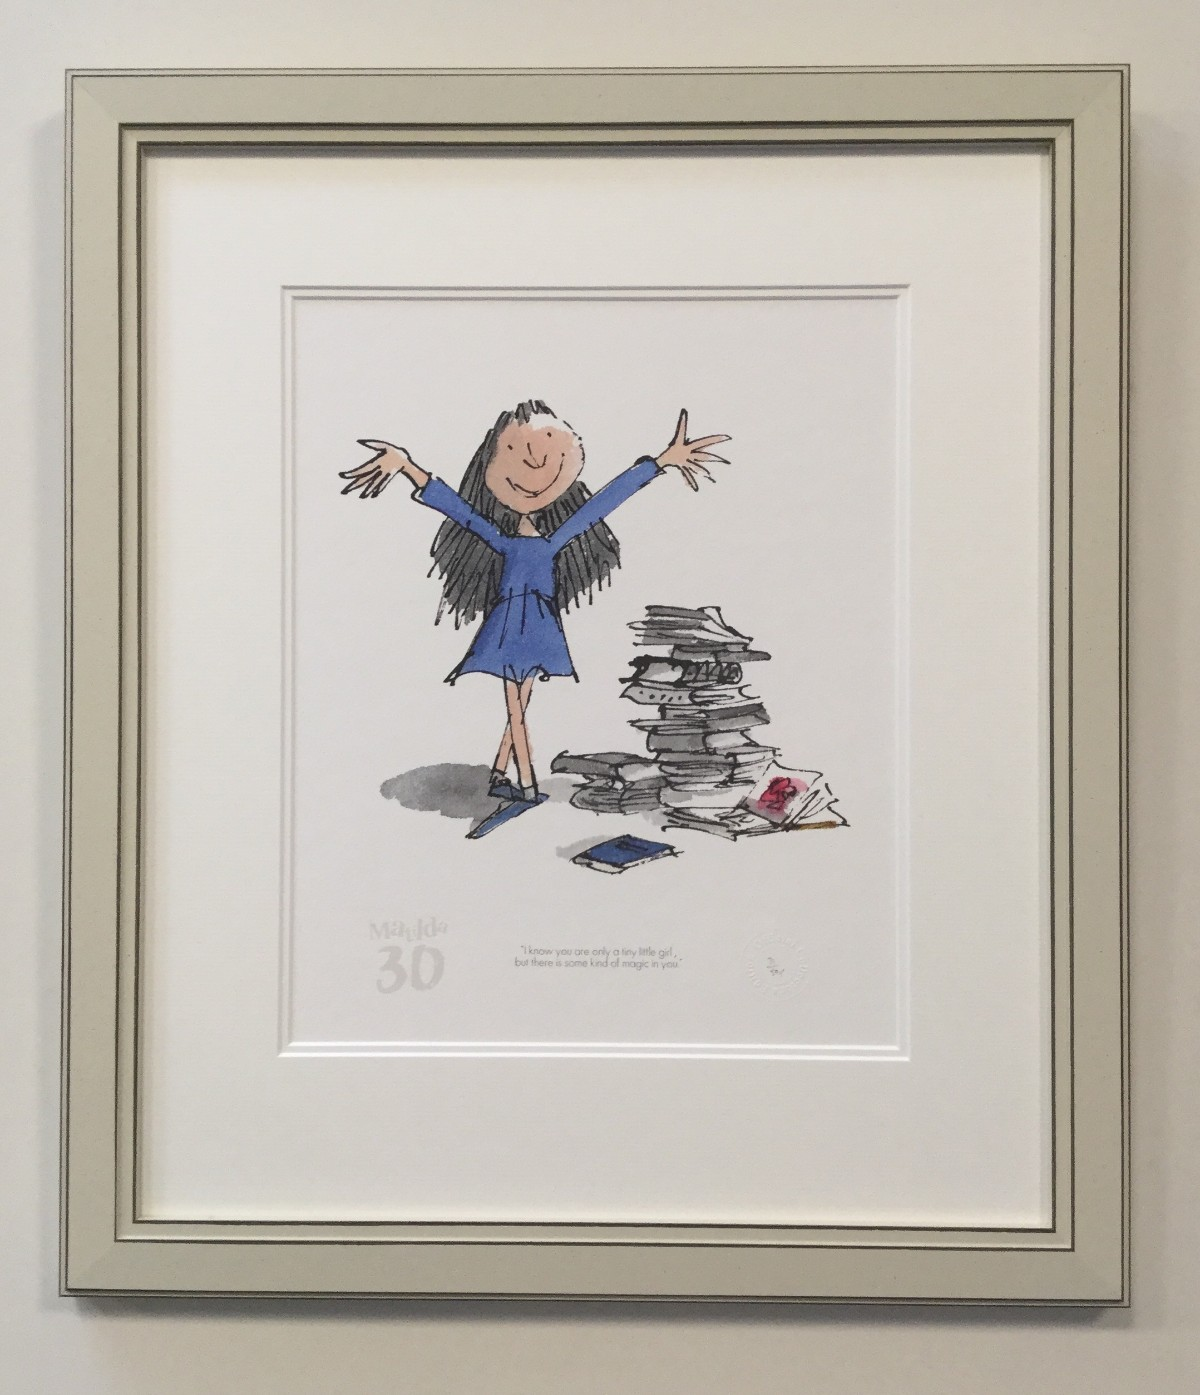 Matilda 30th - A Kind of Magic in You by Quentin Blake